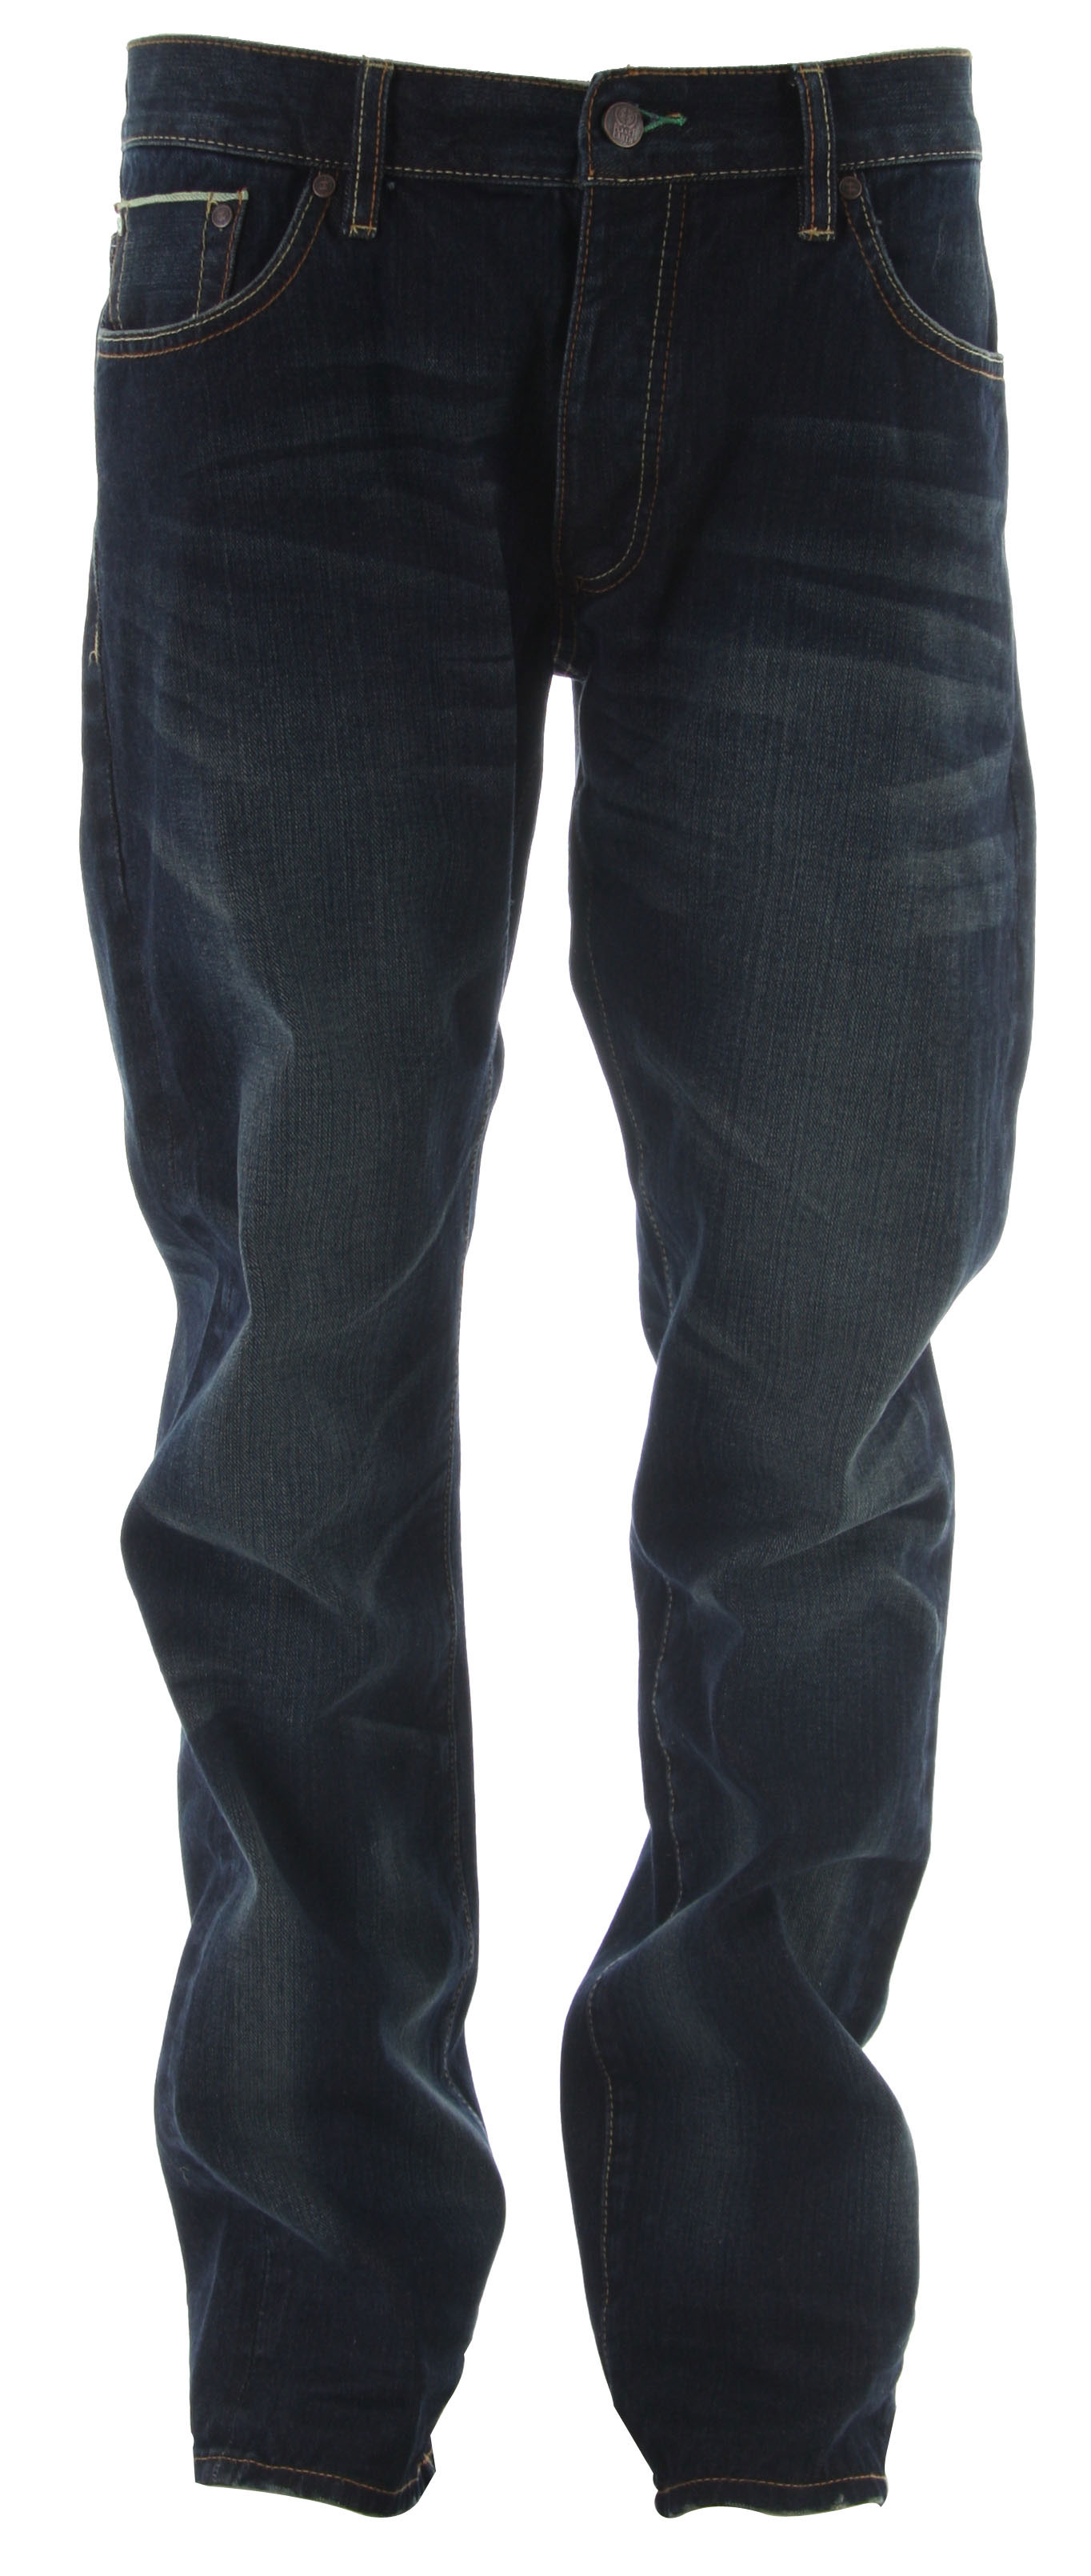 Planet Earth Regular Selvedge Jeans Dark Indigo Wash - $27.95